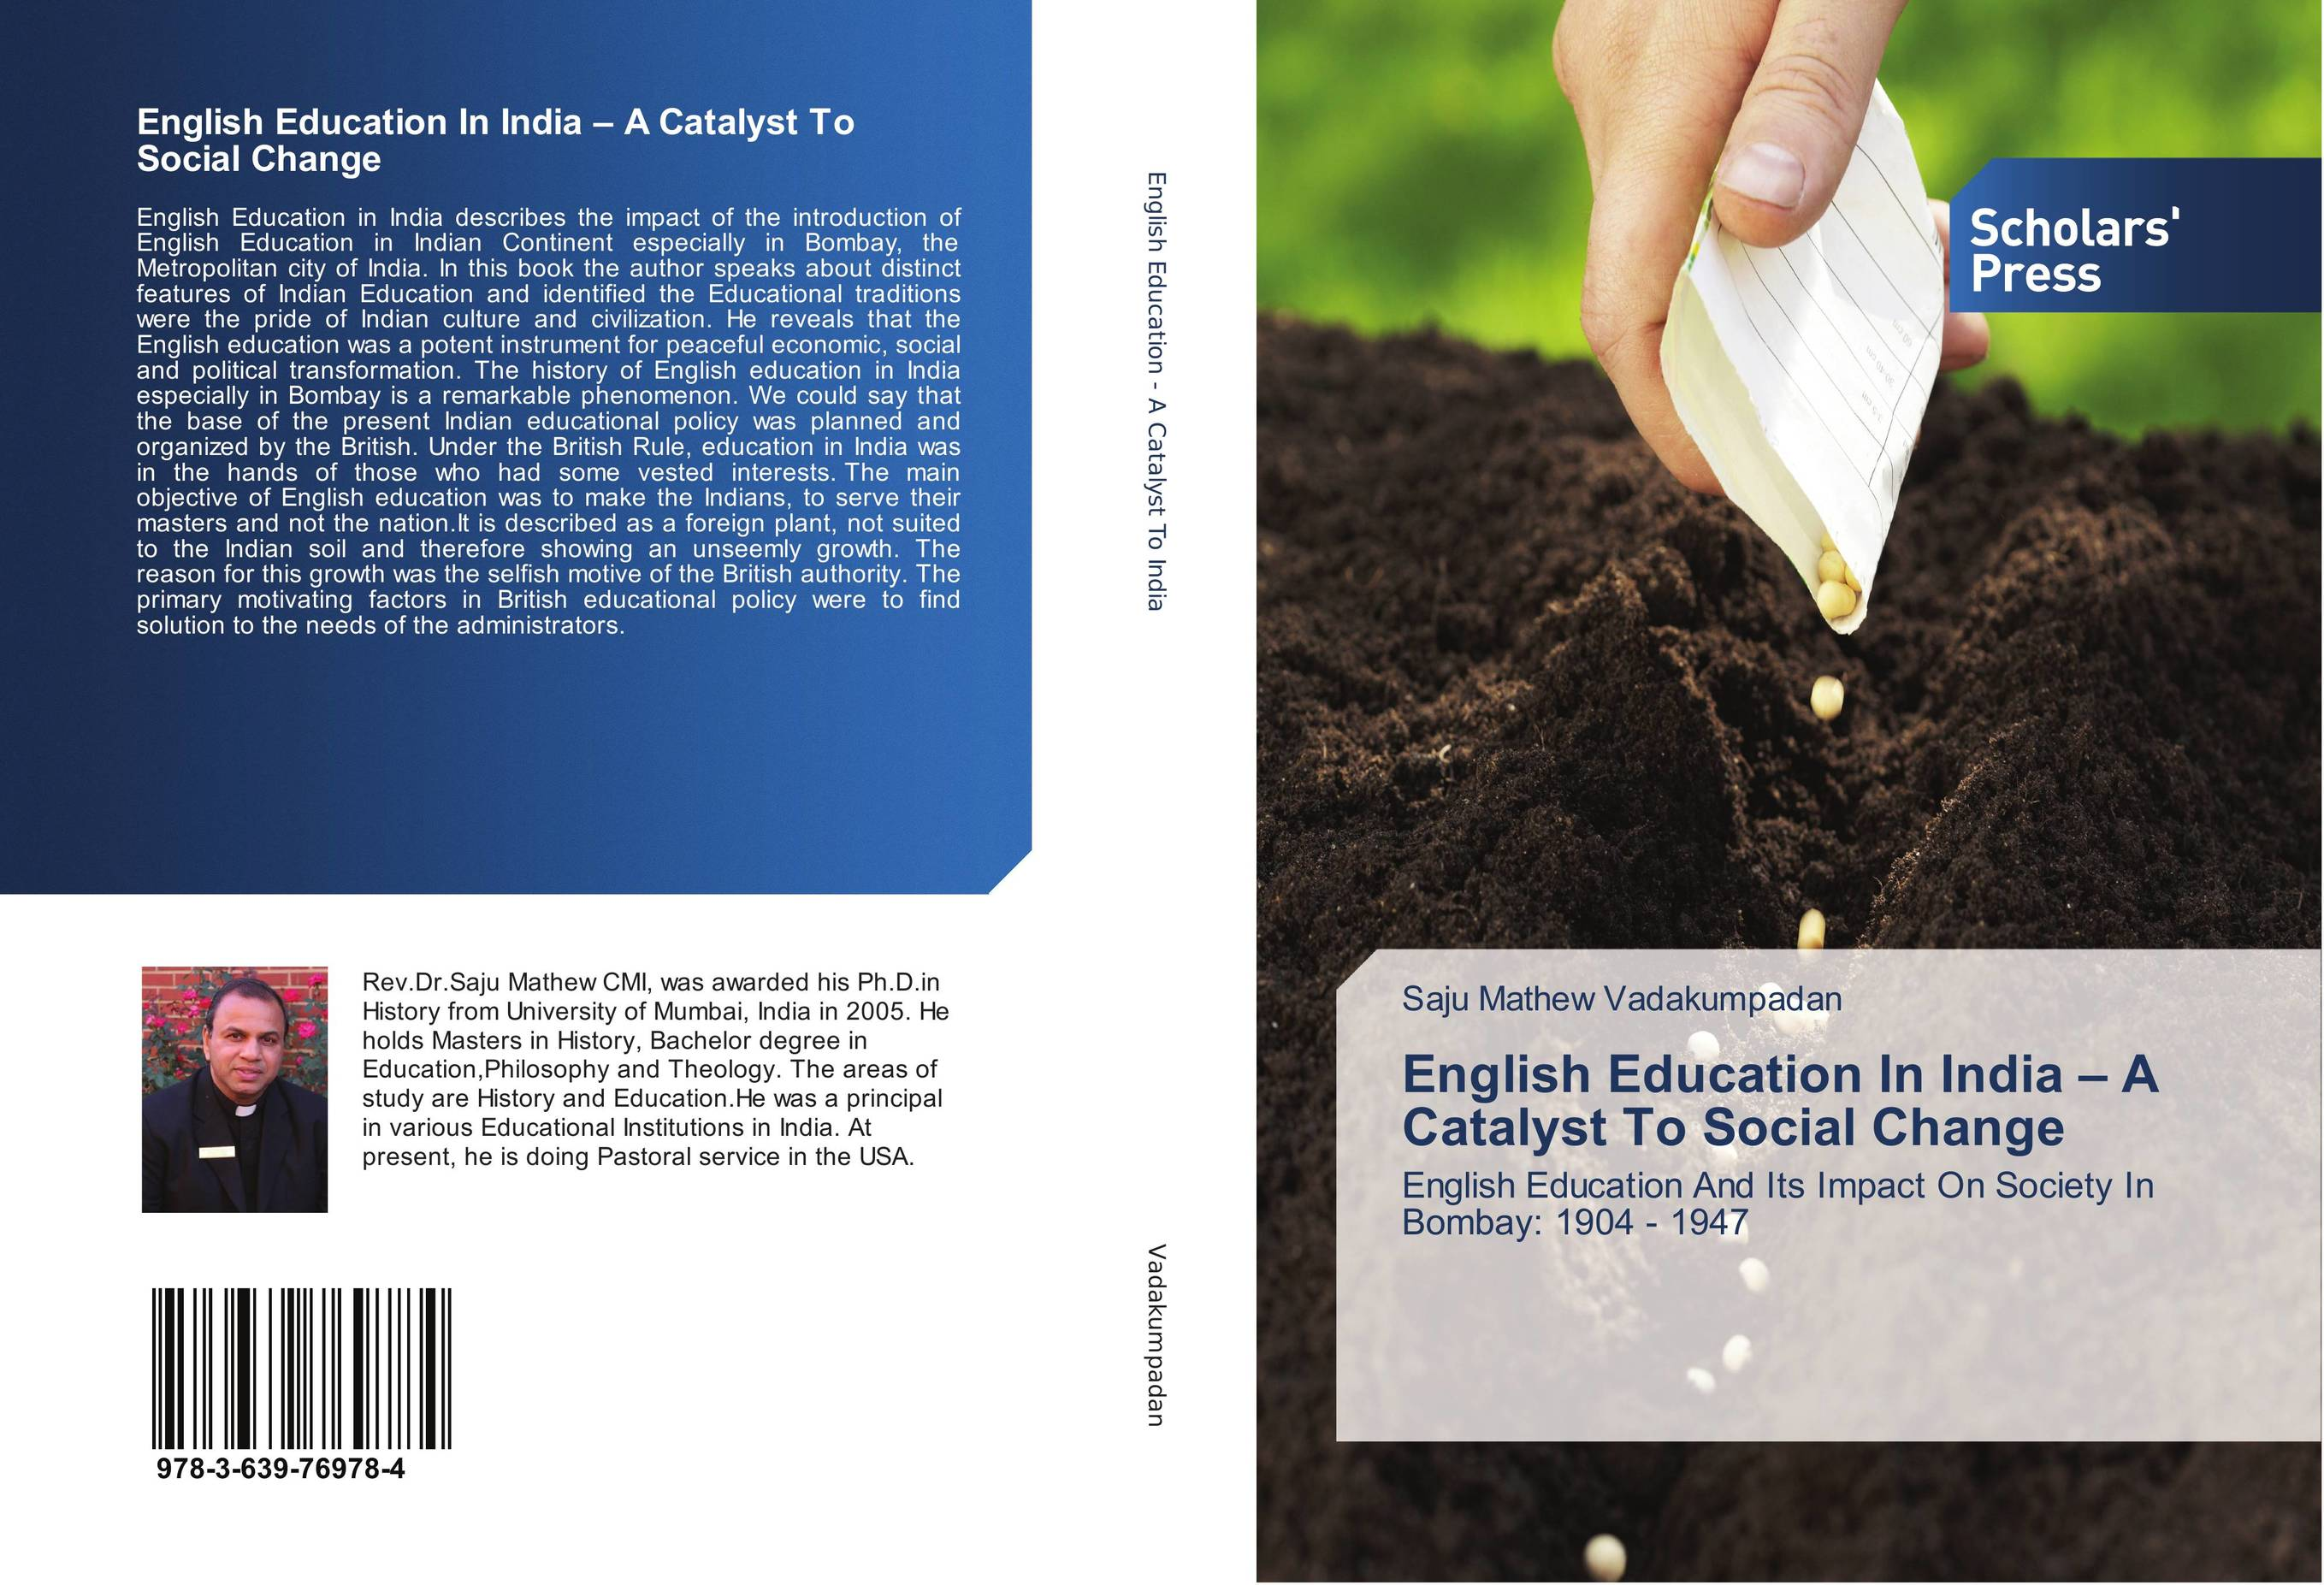 the origin of sports and its impact on society Scientology, a religious teaching defining its major purpose as the study and handling of the spirit in relationship to itself, universes, and other life (hubbard 5) emerged in the first decade following world war ii it reflected certain aspirations and challenges of a new period of social progress in the.